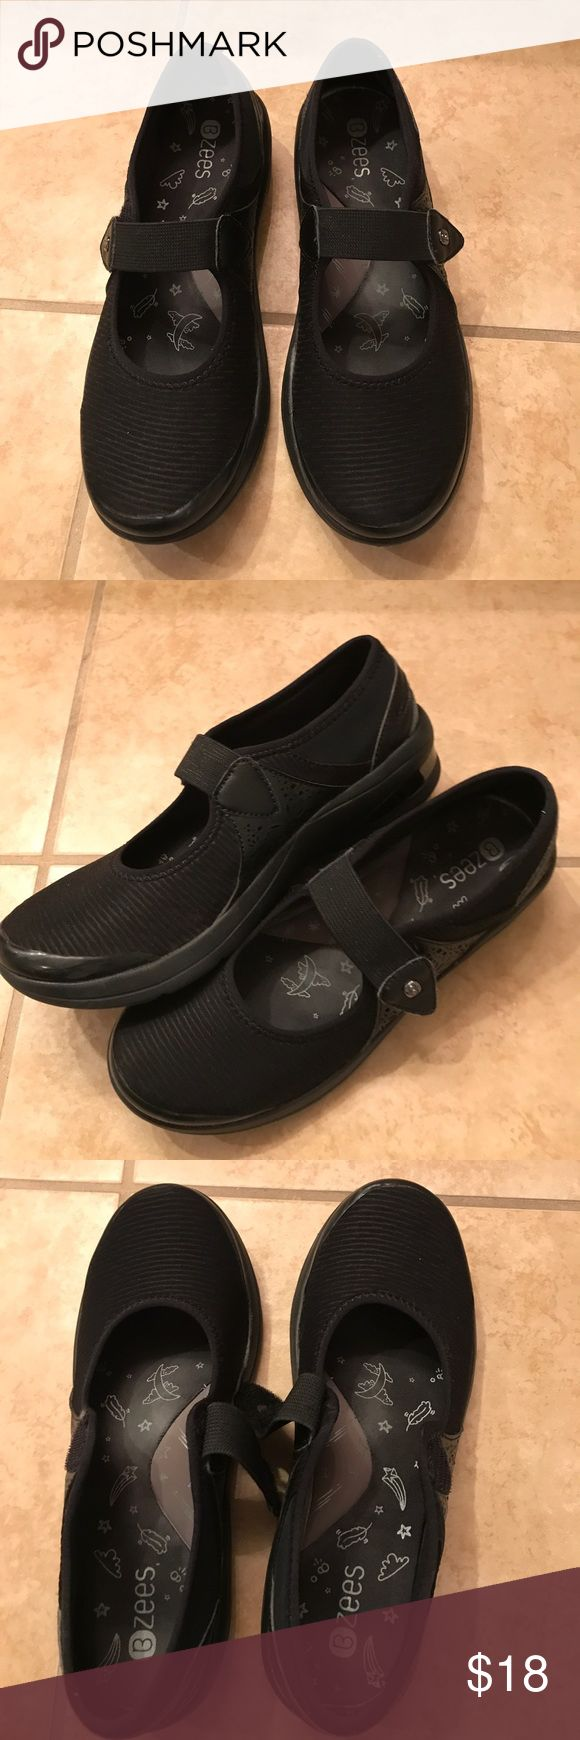 Bzees black Mary Janes Comfortable athleisure shoes. Velcro closure. Soft padded footbed with arch support. Worn a few times indoors only. No signs of wear. Bzees Shoes Flats & Loafers